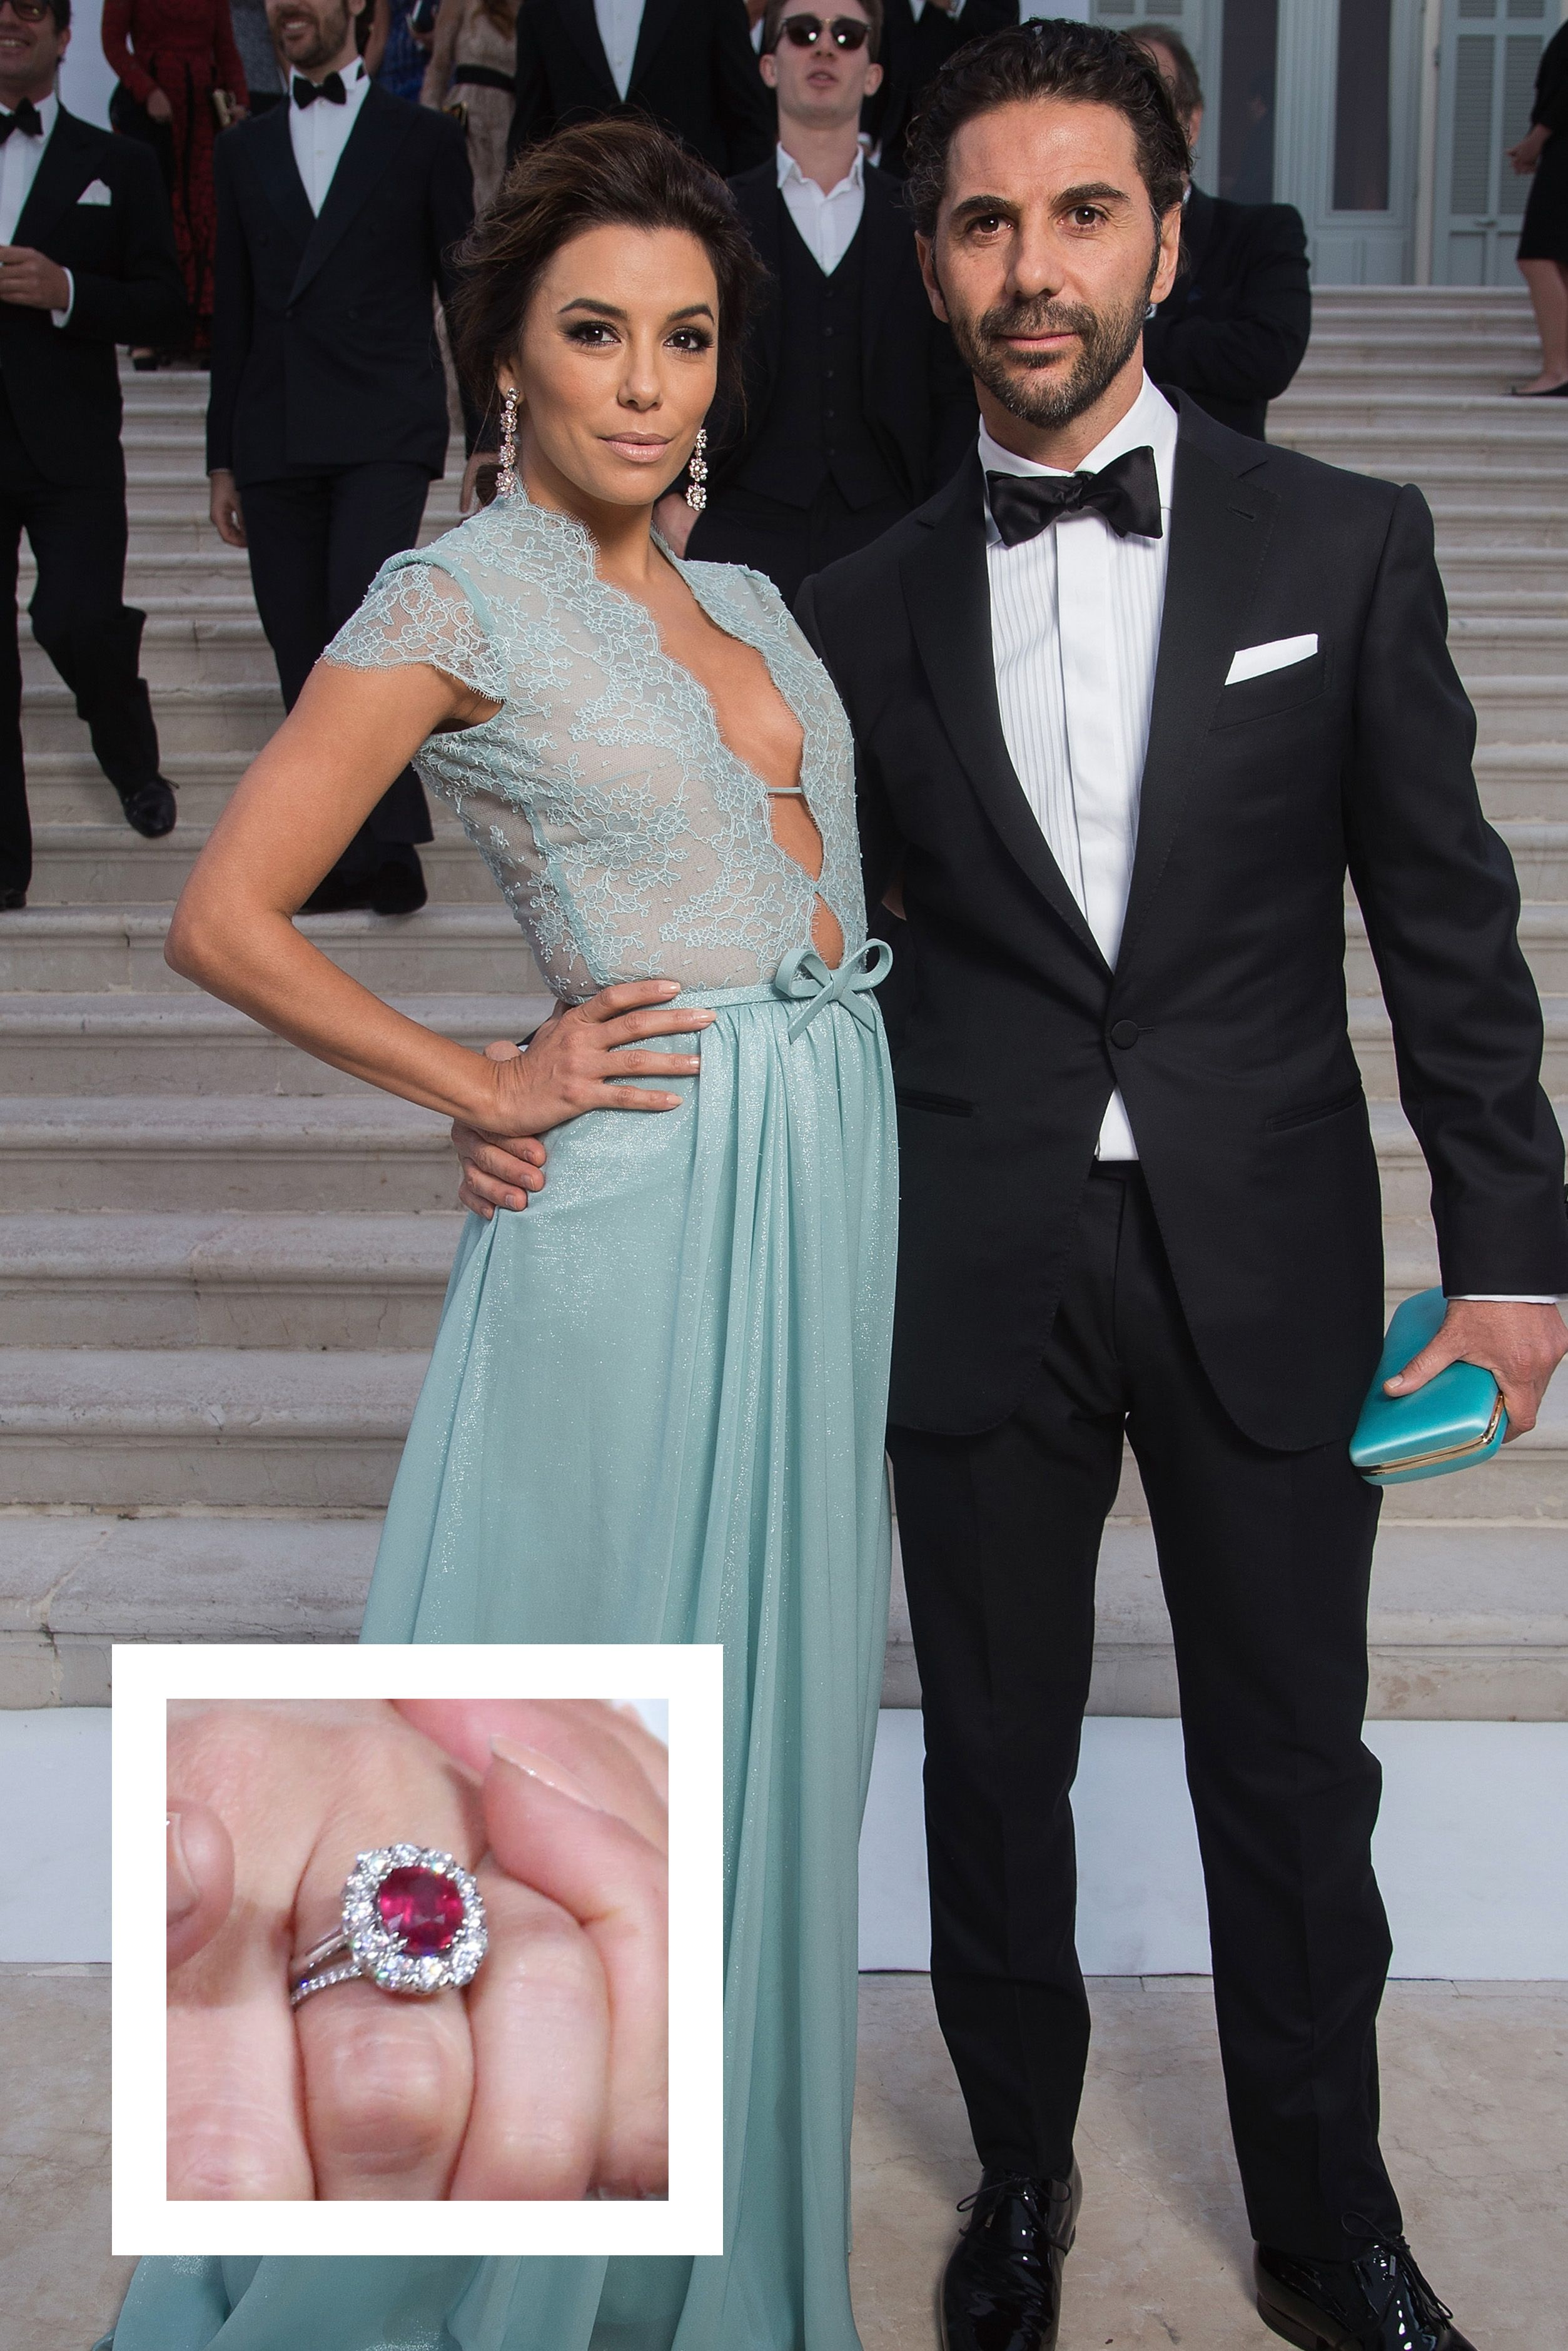 40+ Best Celebrity Engagement Rings - Biggest, Most Expensive Rings